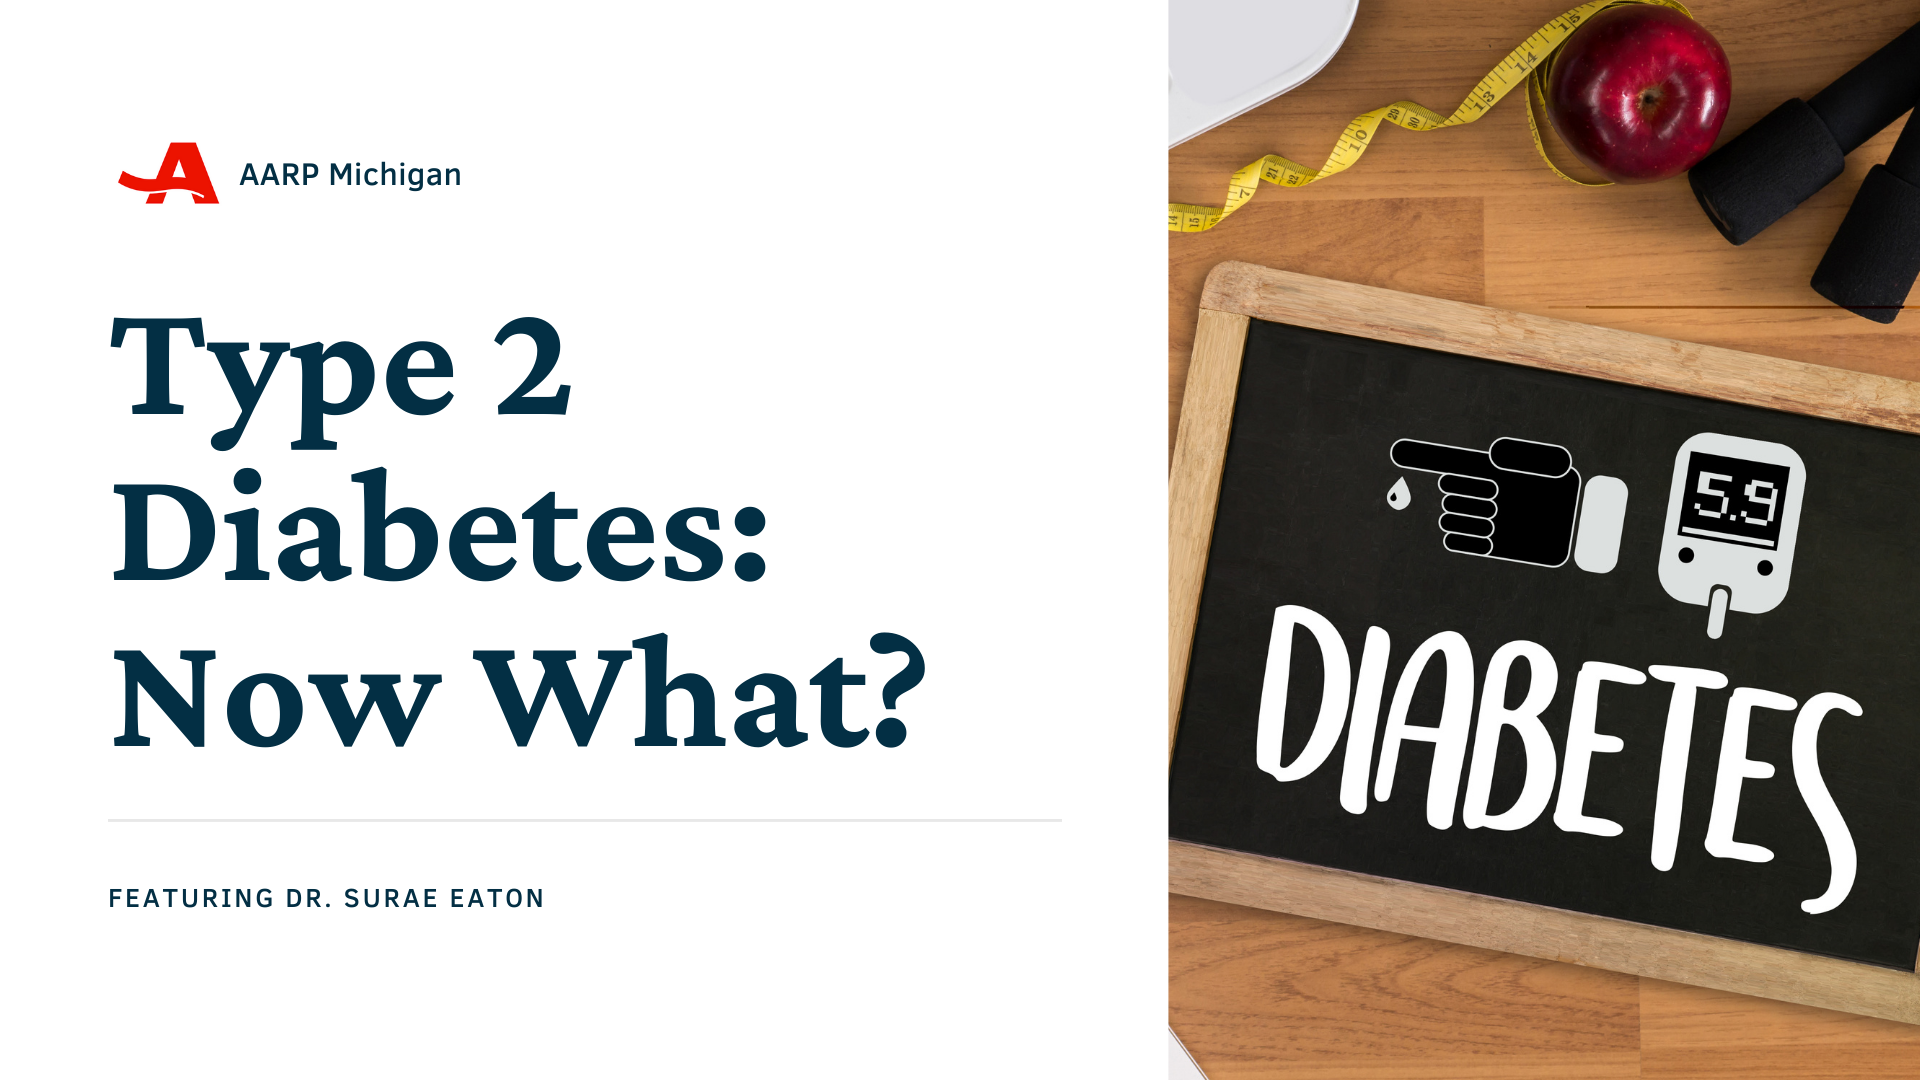 Type 2 Diabetes - Now What_.png